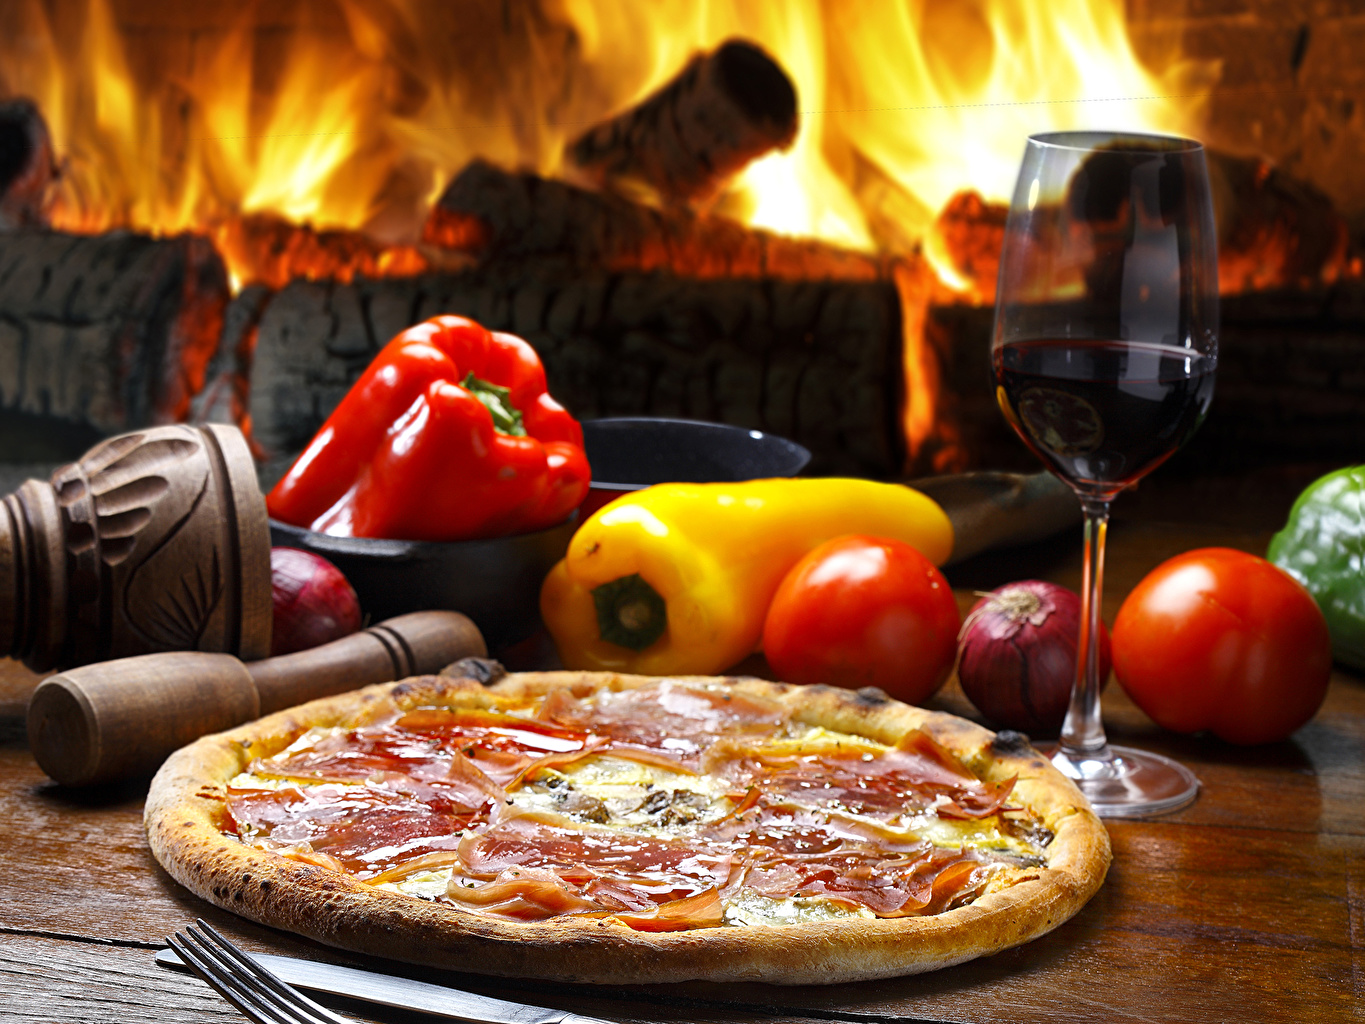 Pictures Wine Pizza Tomatoes Fast food Food Pepper Stemware